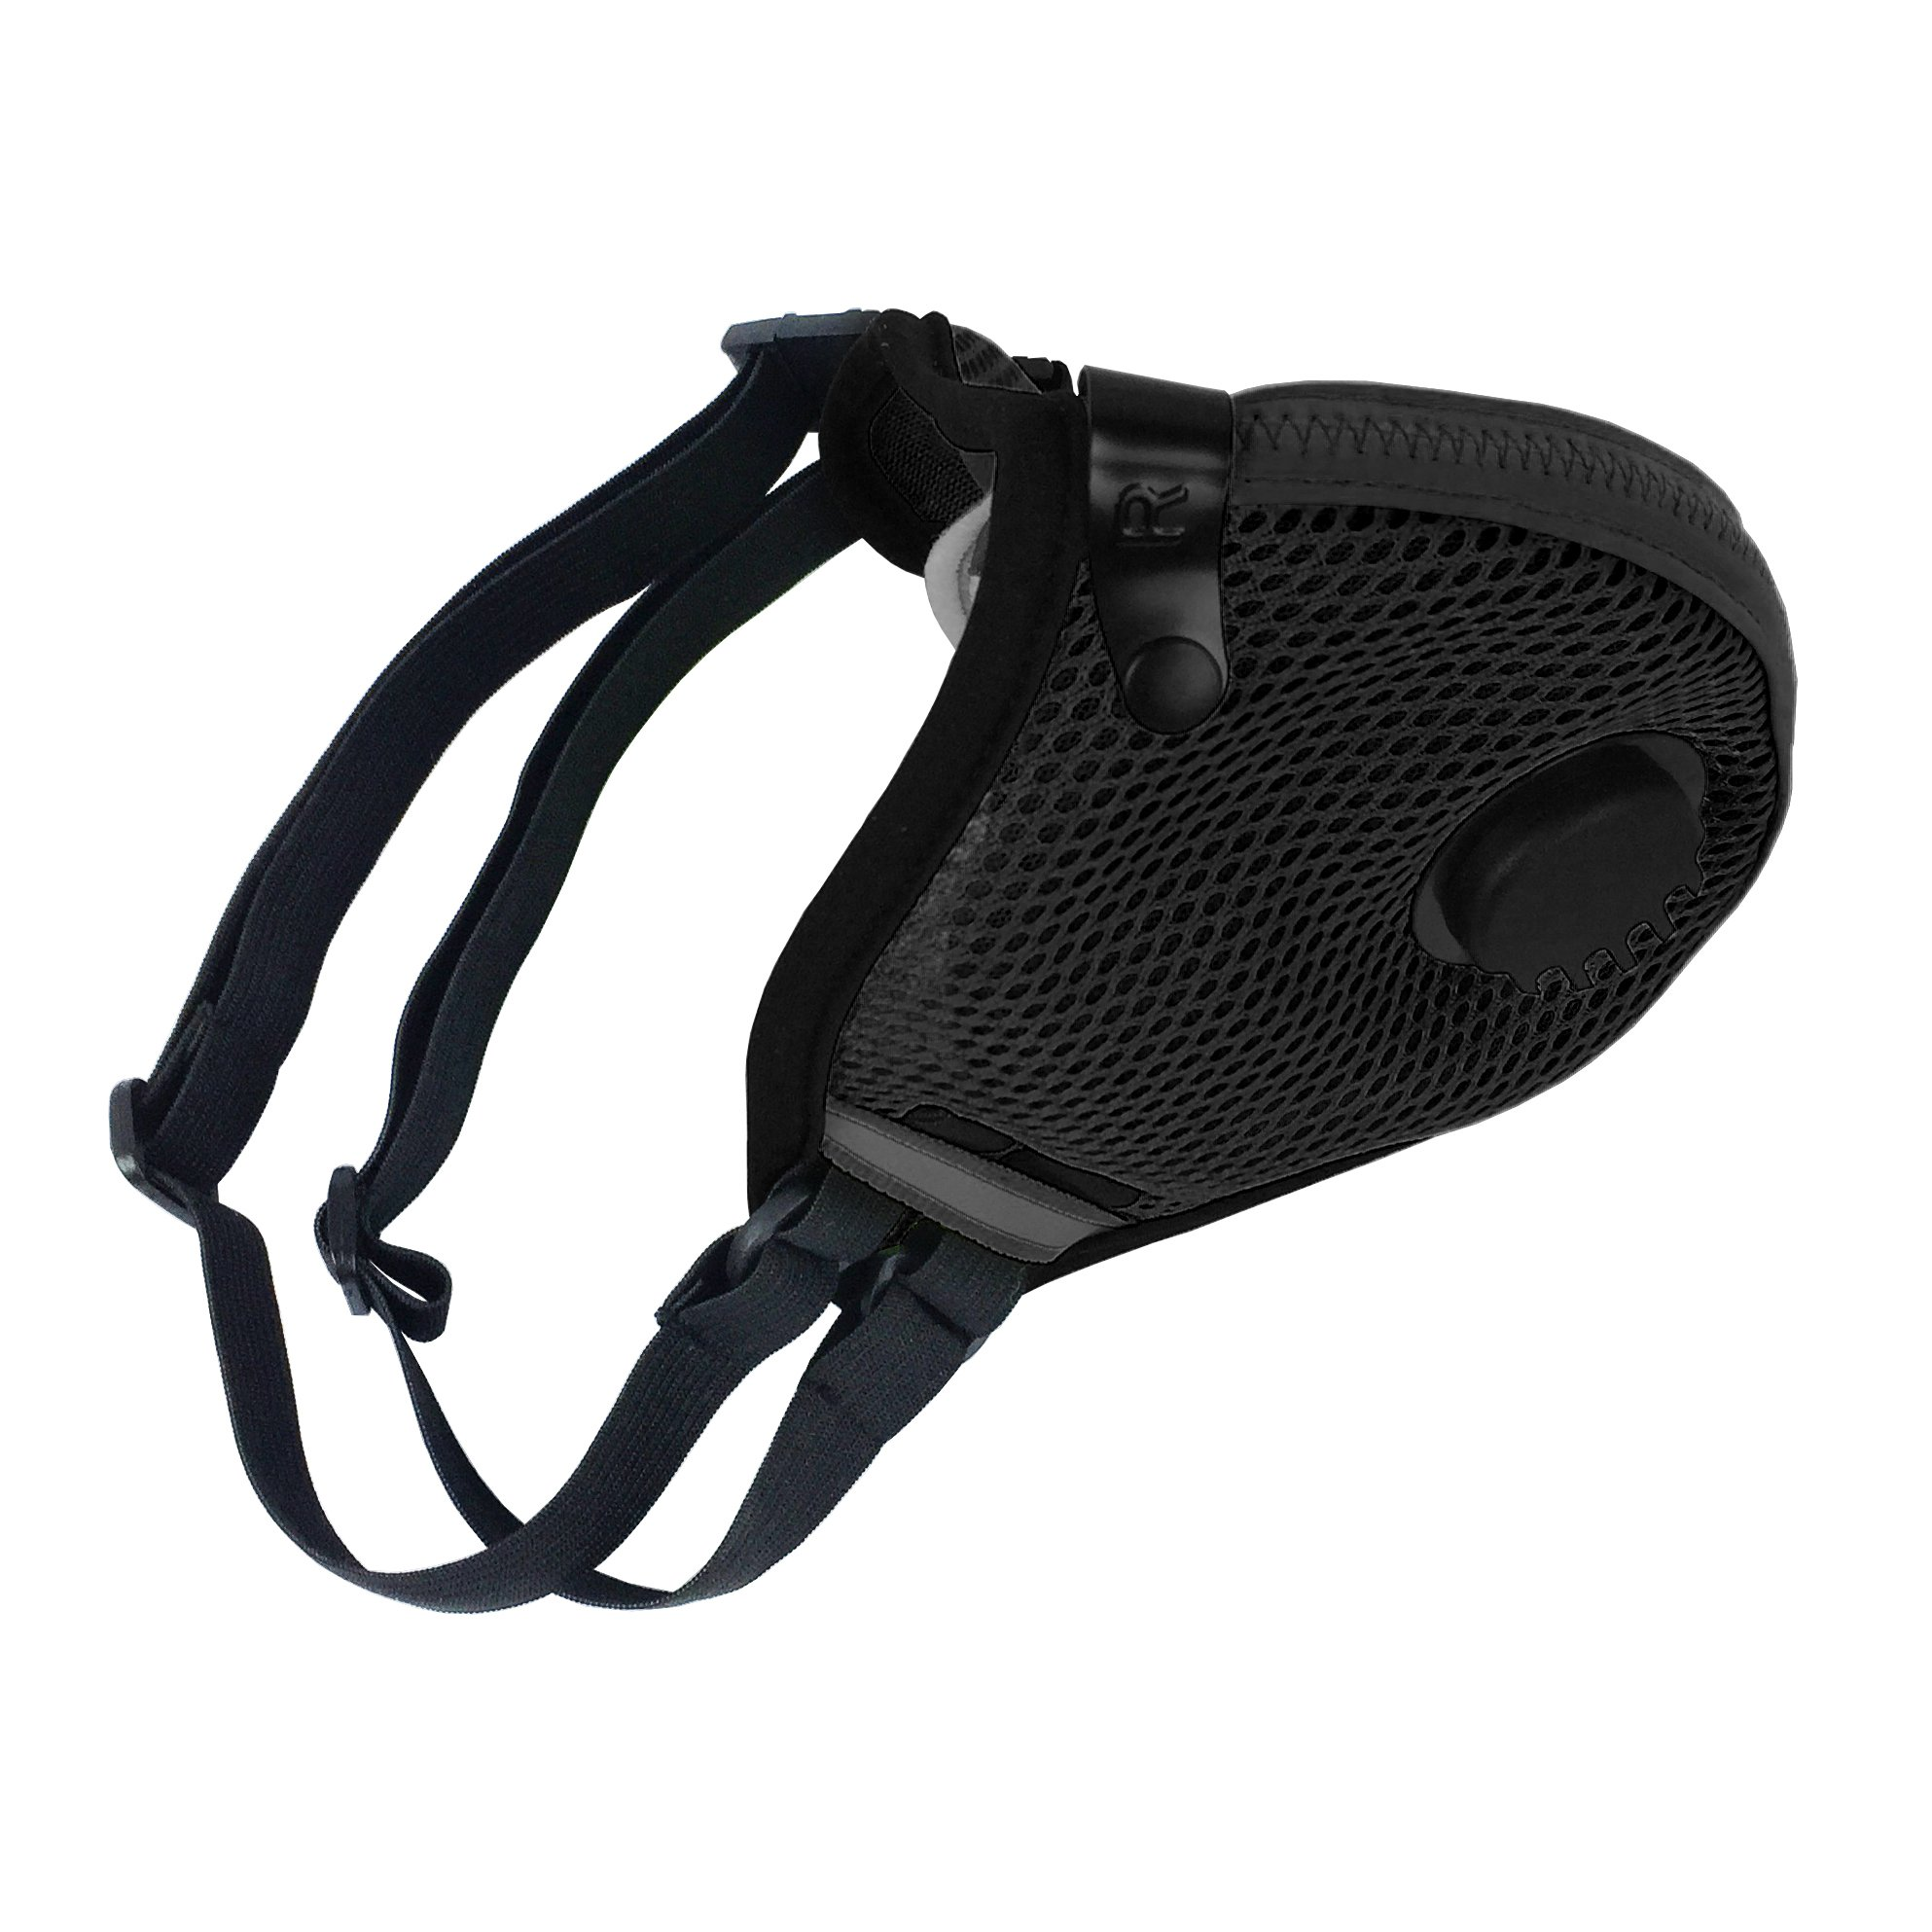 RZ M2.5 Dual Strap Mesh Dust/Air Filtration Mask Bonus Pack Mask Washable New Adjustable Straps Allergy/Asthma/Construction/Woodworking/Pollution/Adult (Large (125lbs - 215lbs), Black) by RZ Mask (Image #4)